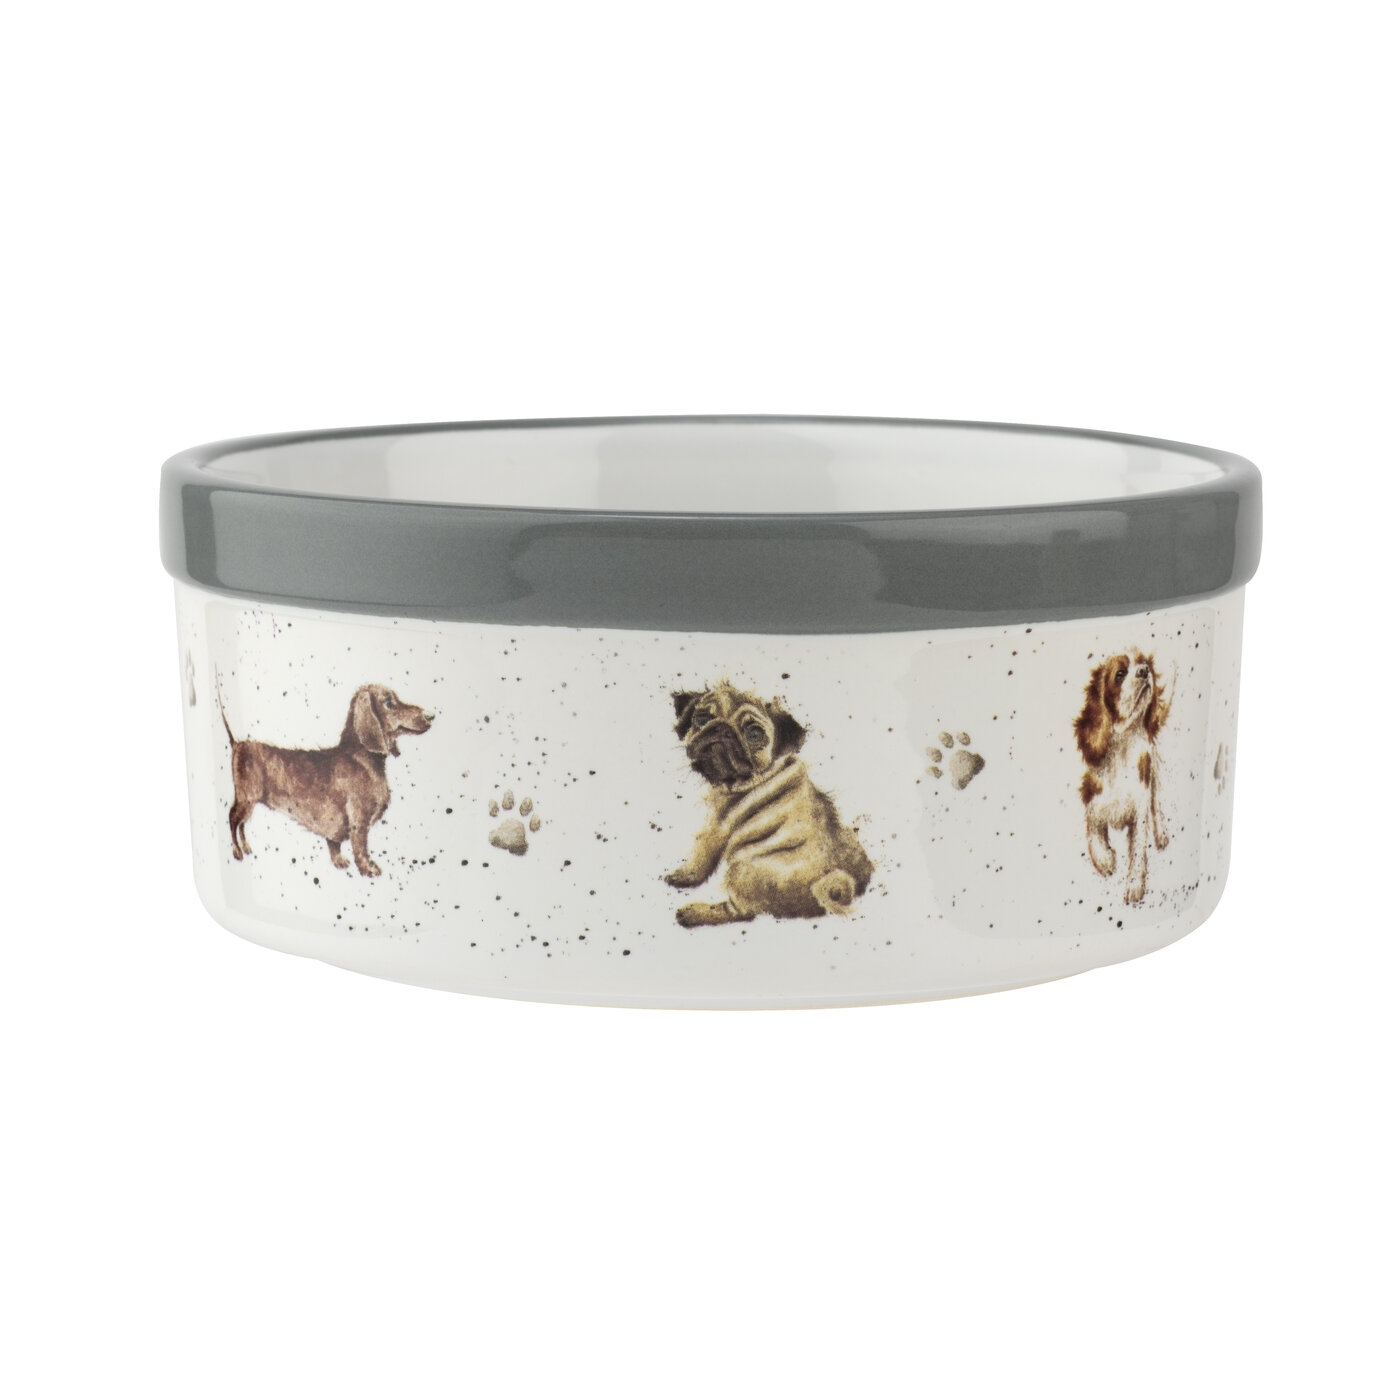 Royal Worcester Wrendale Designs 6 Inch Pet Bowl (Assorted Dogs) image number 0